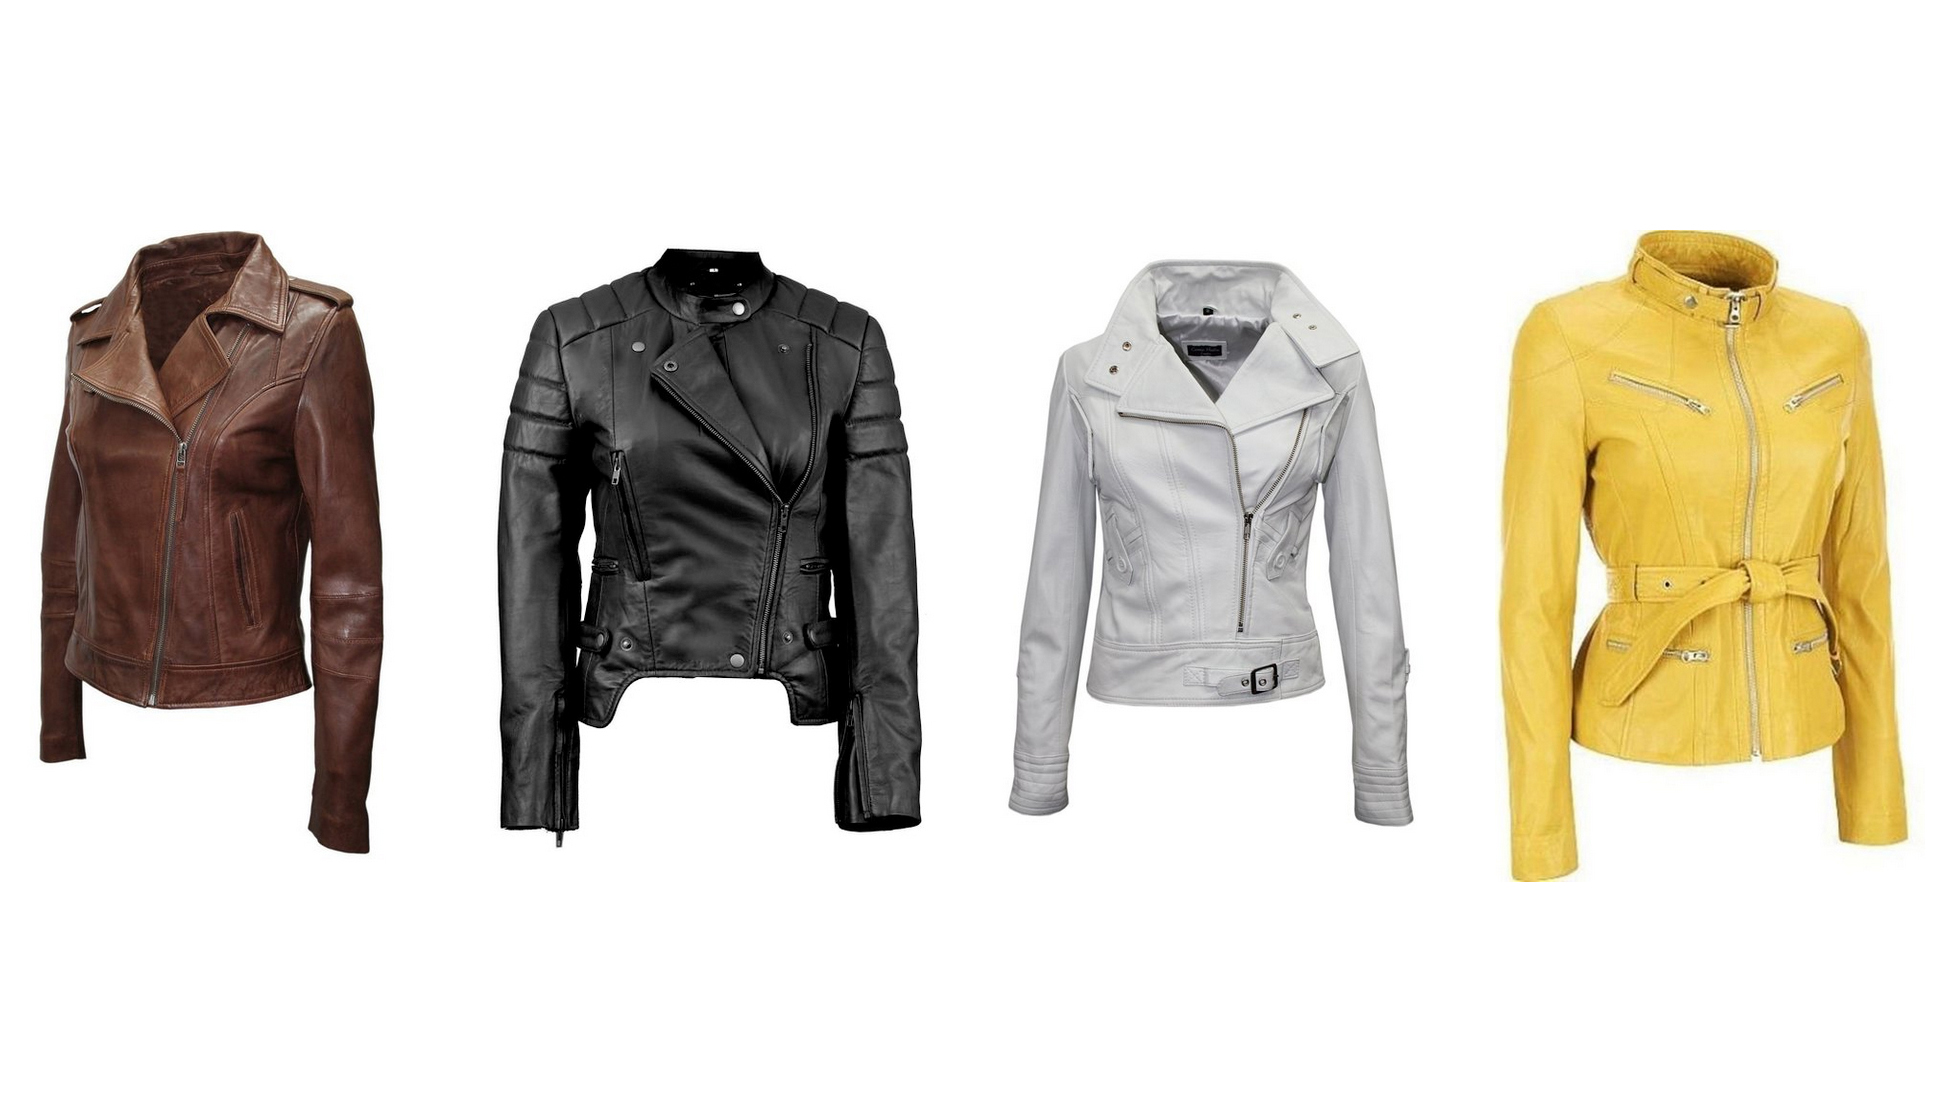 leather jackets, motorcycle jackets, black leather jacket, brown leather jacket, biker jacket, leather jackets for women, motorcycle jackets for women, leather motorcycle jacket, womens leather jackets, ladies leather jackets, leather biker jacket, motorcycle gear, leather jacket women, womens motorcycle jacket, motorcycle leathers, motorcycle leather jacket, moto jacket, motorbike jackets, women's bomber jackets, womens leather bomber jackets, womens bomber jackets, exemplar, vince camuto, cole haan, infinity, Western Leather, Andrew Marc, Andrew Marc coats, andrew marc leather jacket, standard leather, FactoryExtreme